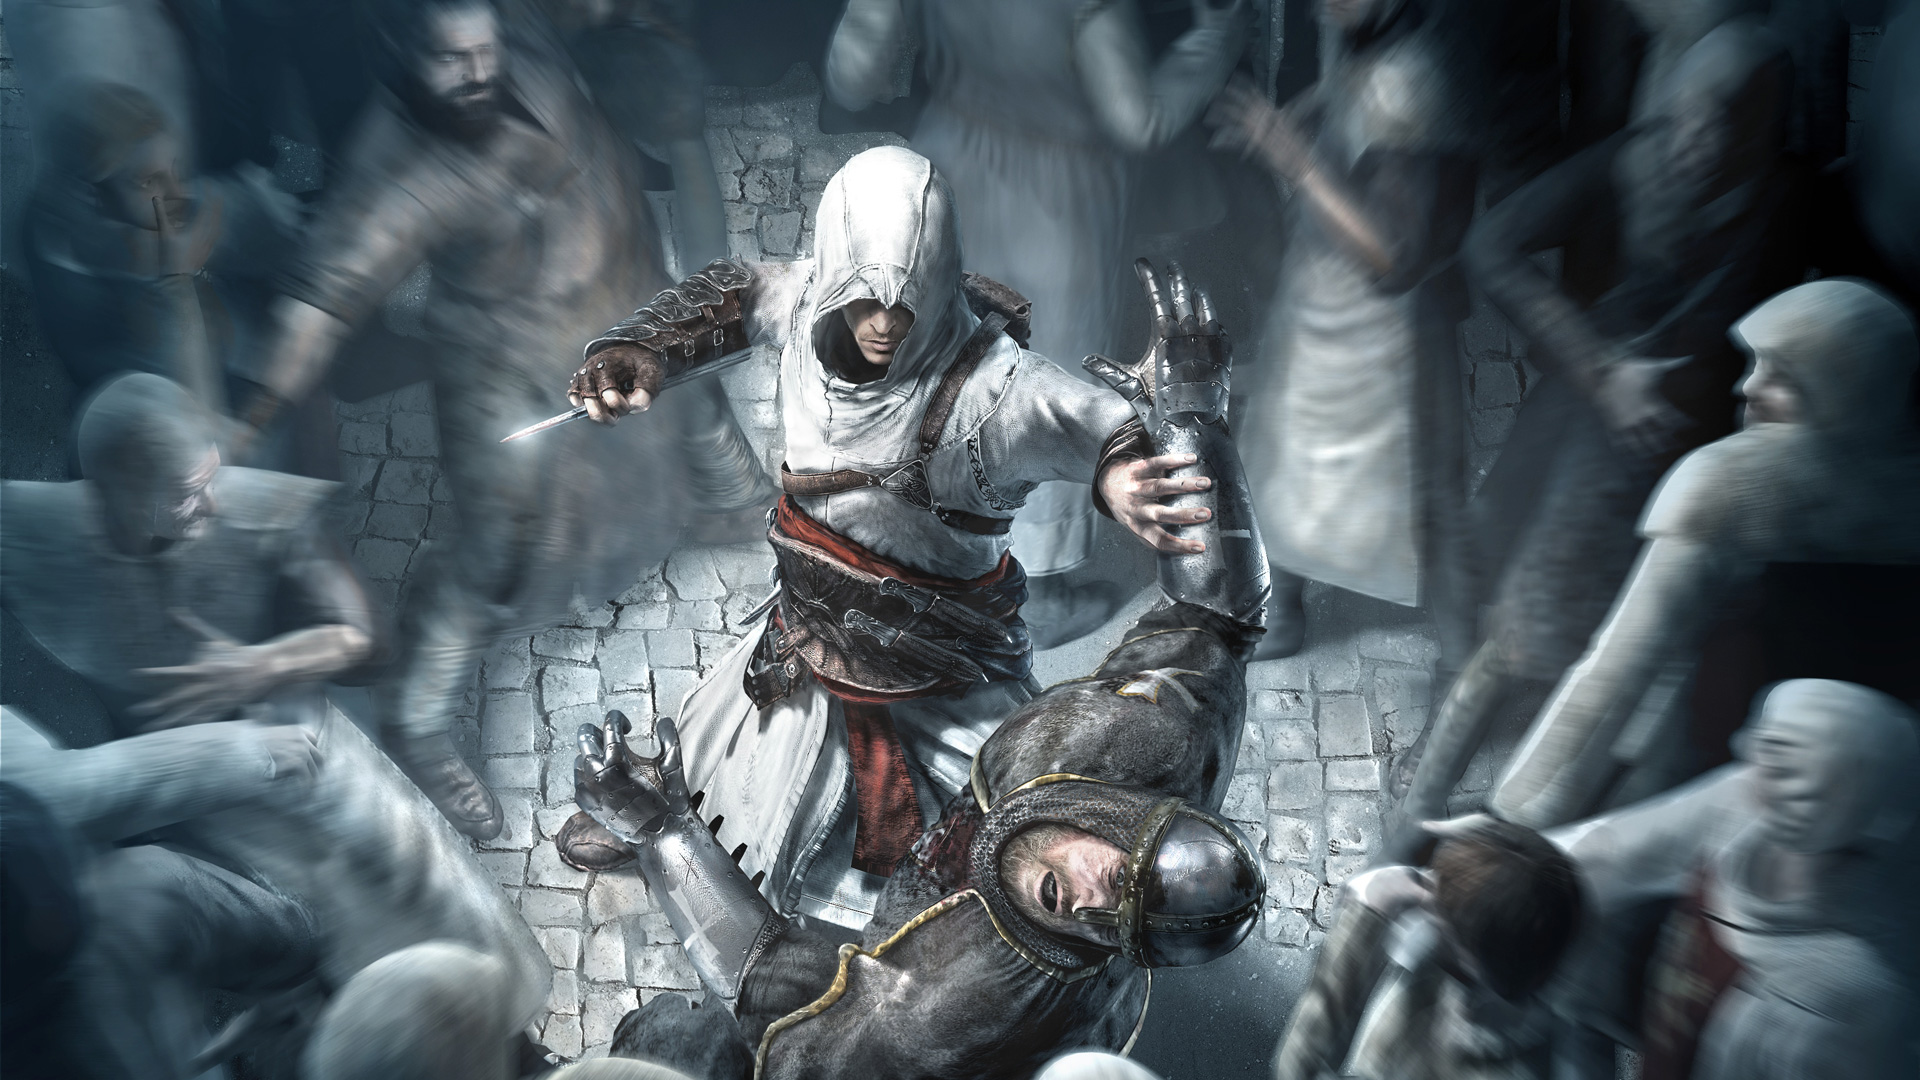 Assassins Creed Wallpaper 5 Wallpapersbq